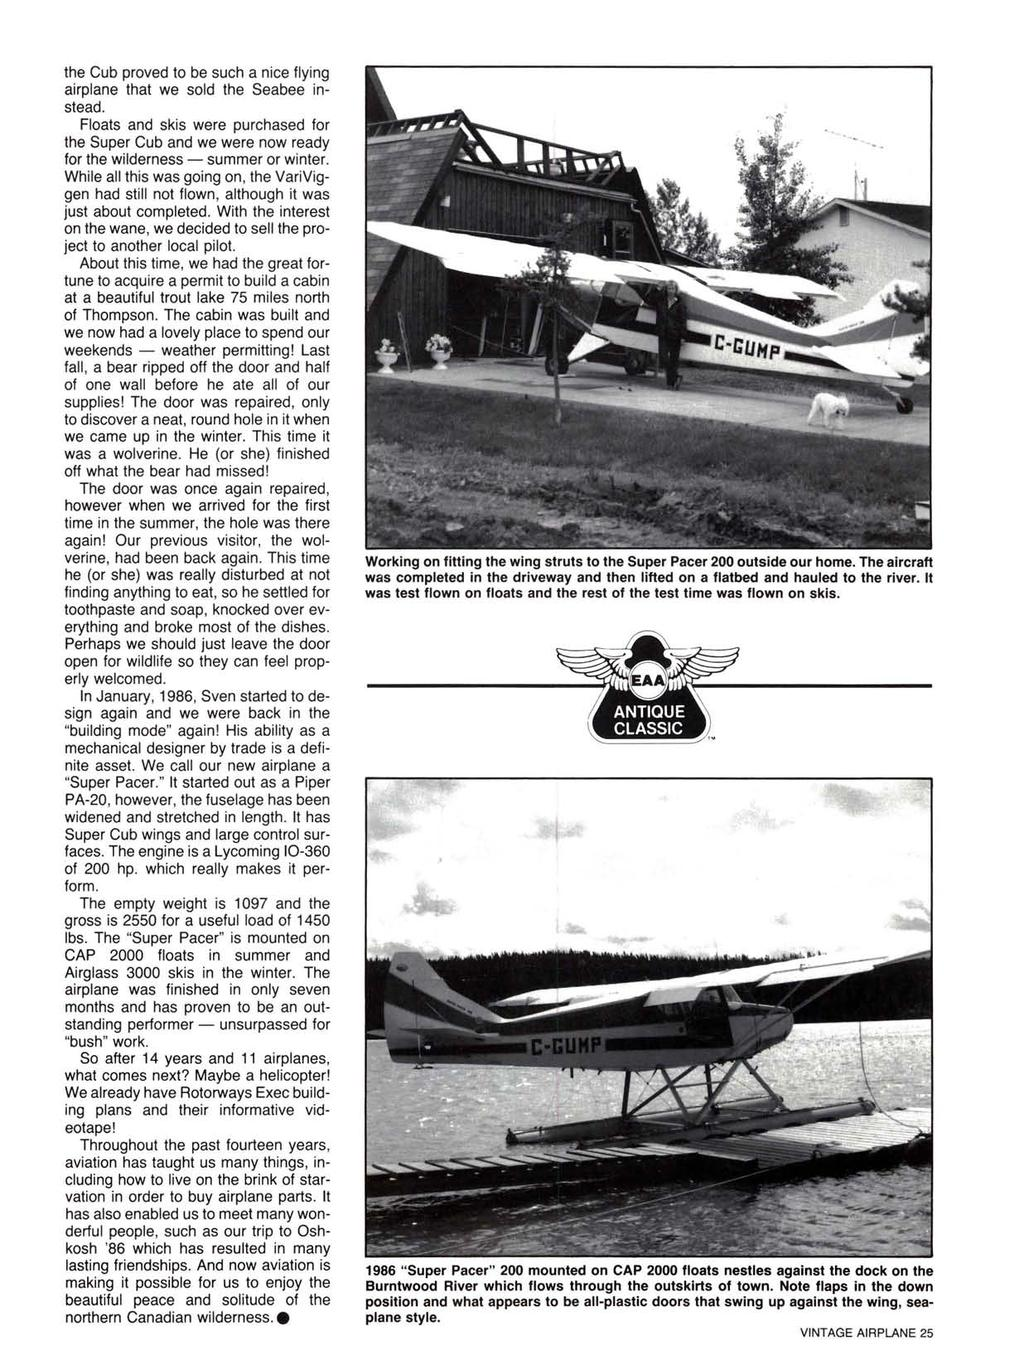 the Cub proved to be such a nice flying airplane that we sold the Seabee instead. Floats and skis were purchased for the Super Cub and we were now ready for the wilderness - summer or winter.